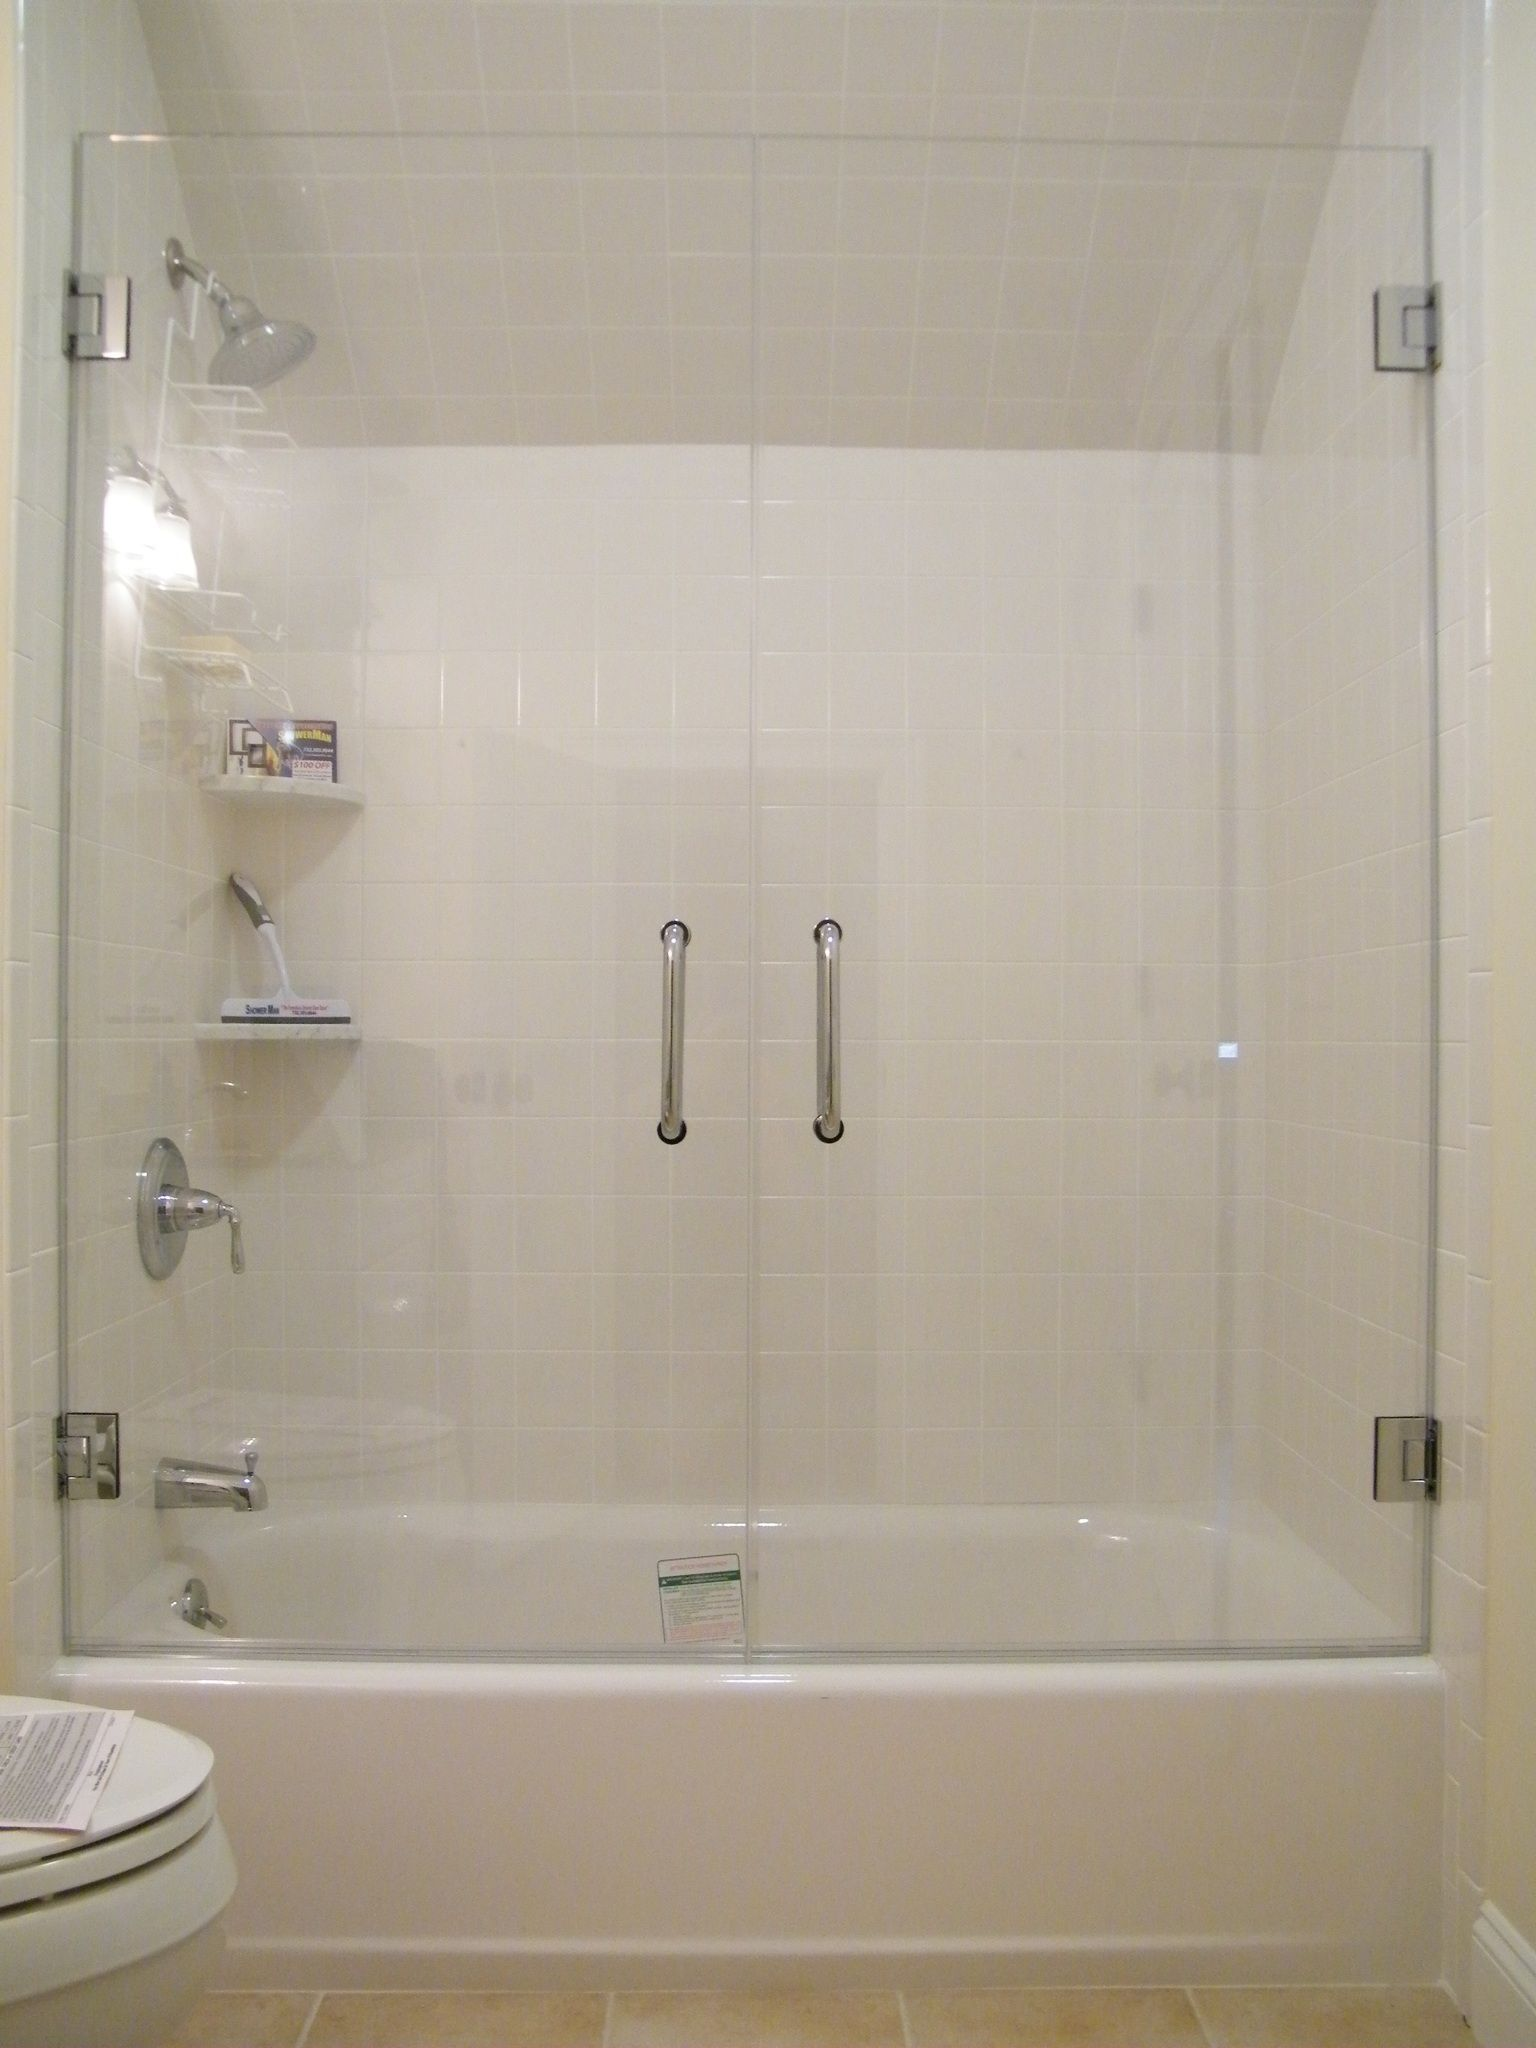 Pin By Showerman On Frameless Shower Doors Bathtub Shower Doors Tub With Glass Door Tub Shower Doors